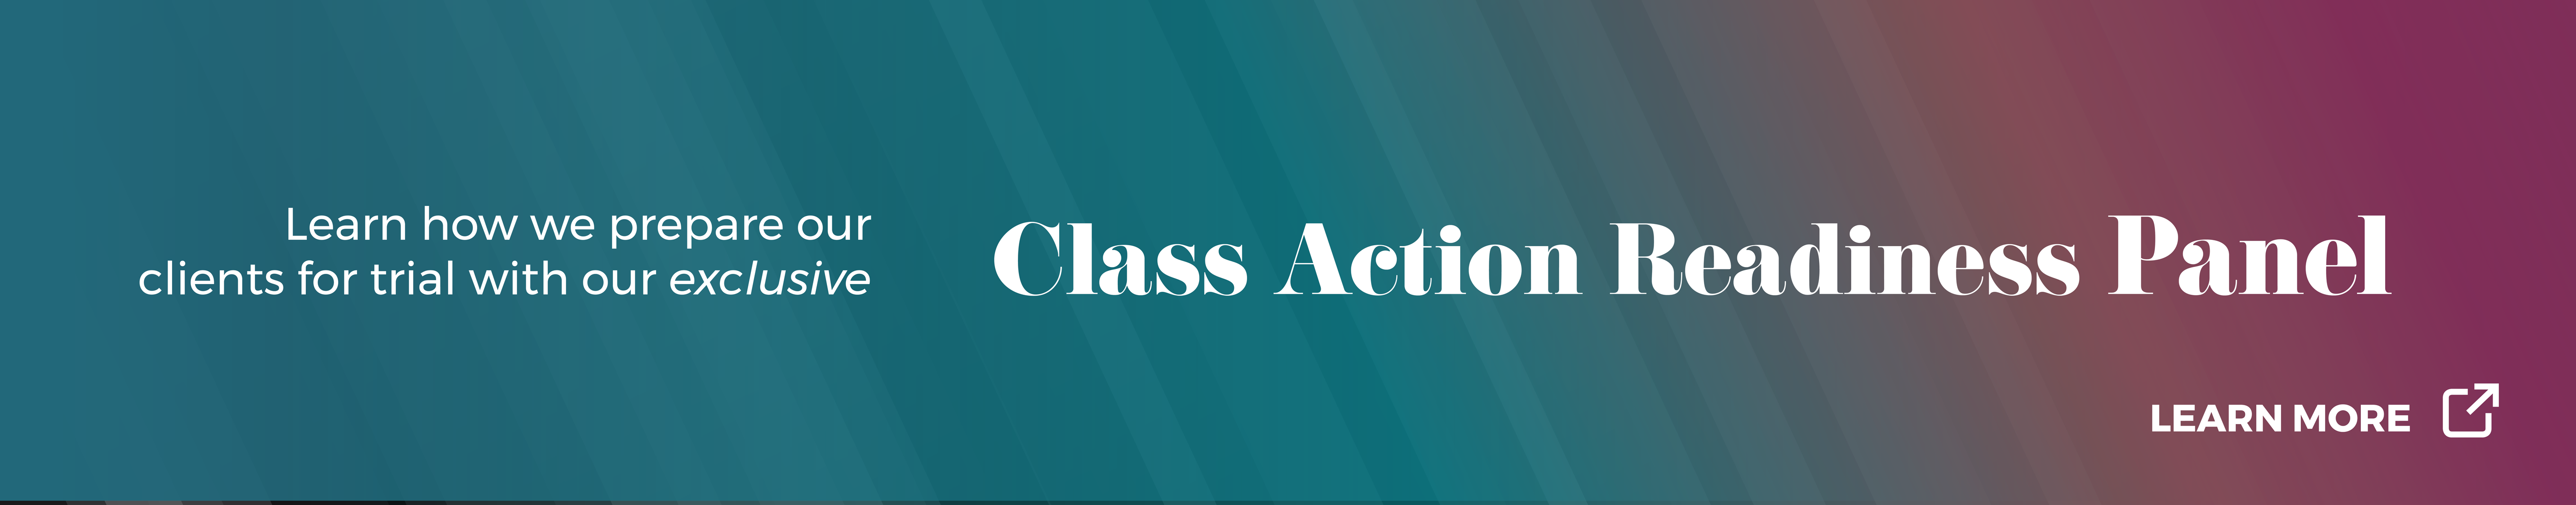 Class Action Readiness Panel